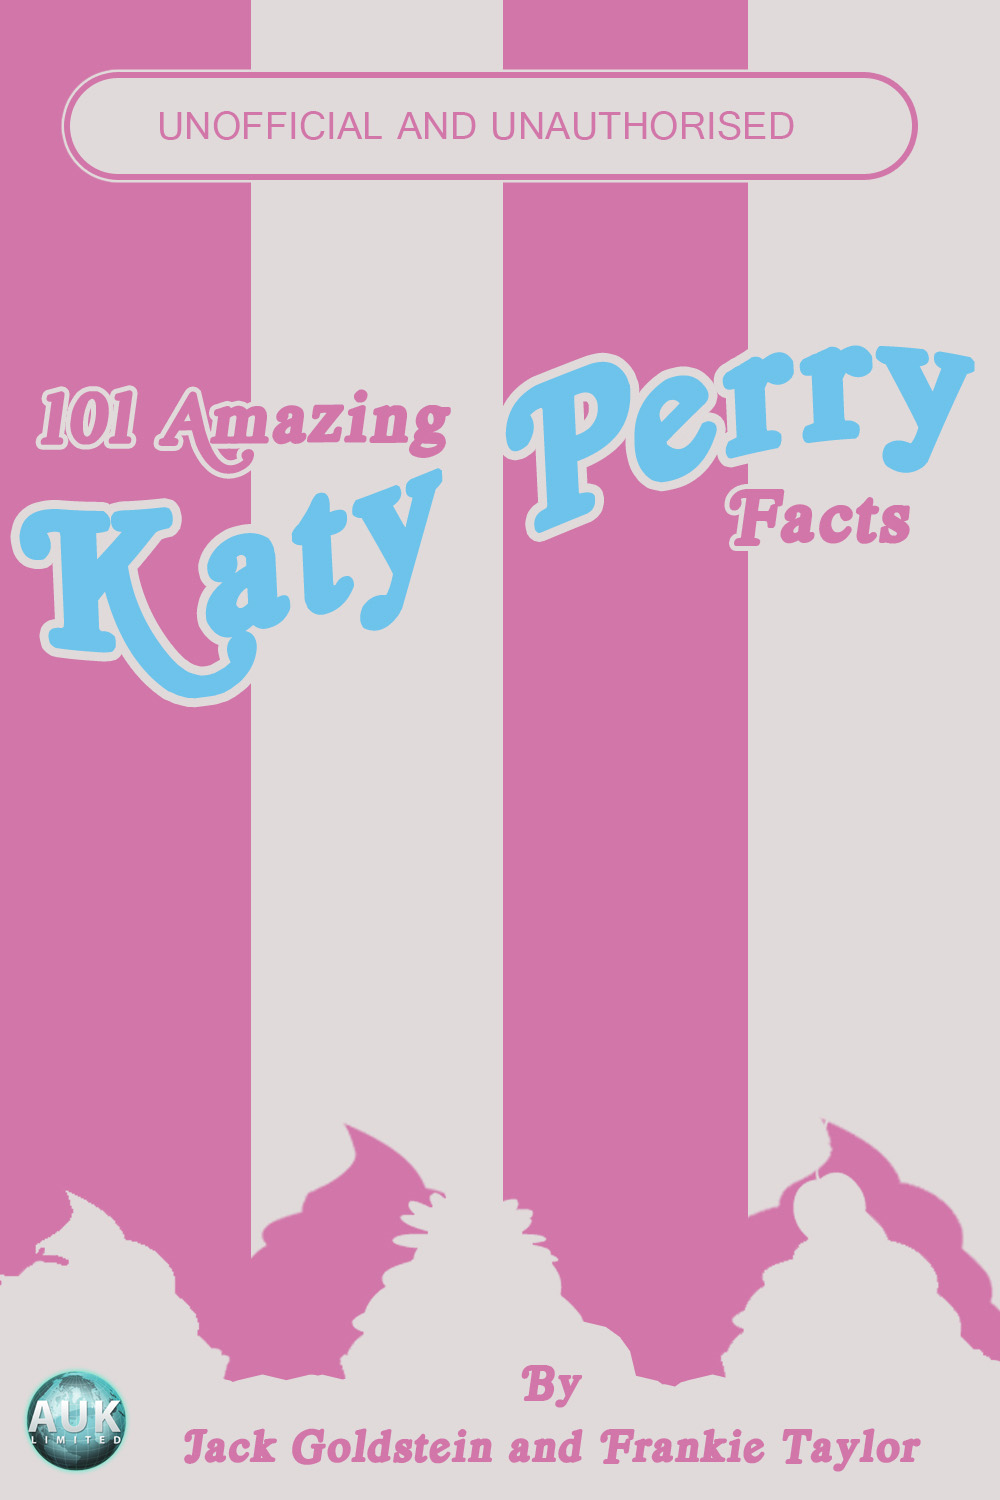 101 Amazing Katy Perry Facts By: Jack Goldstein, Frankie Taylor